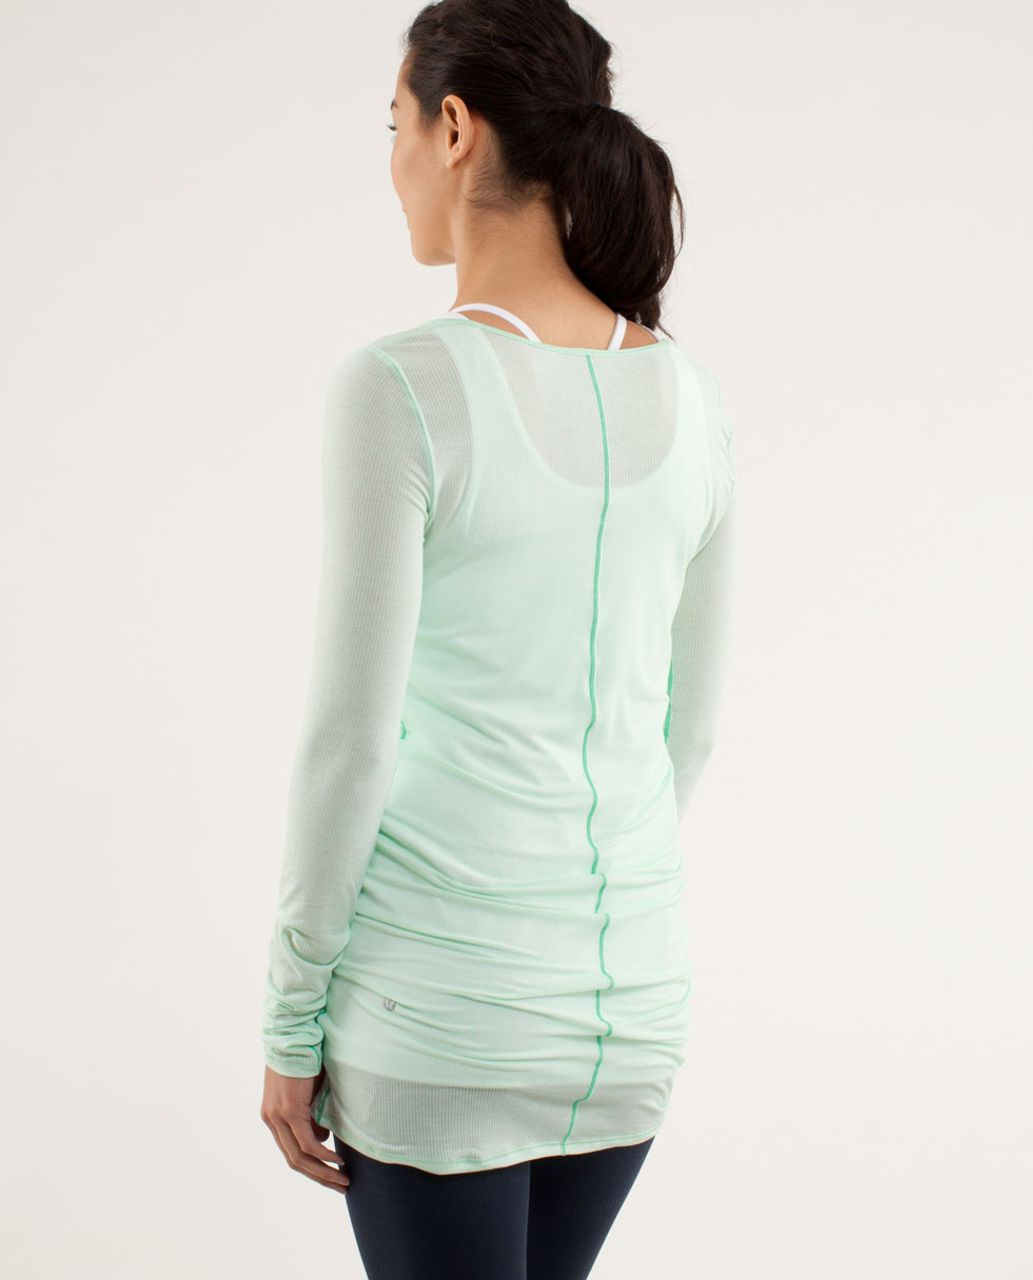 Lululemon Elongate Burnout Long Sleeve - Tonka Stripe Fresh Teal